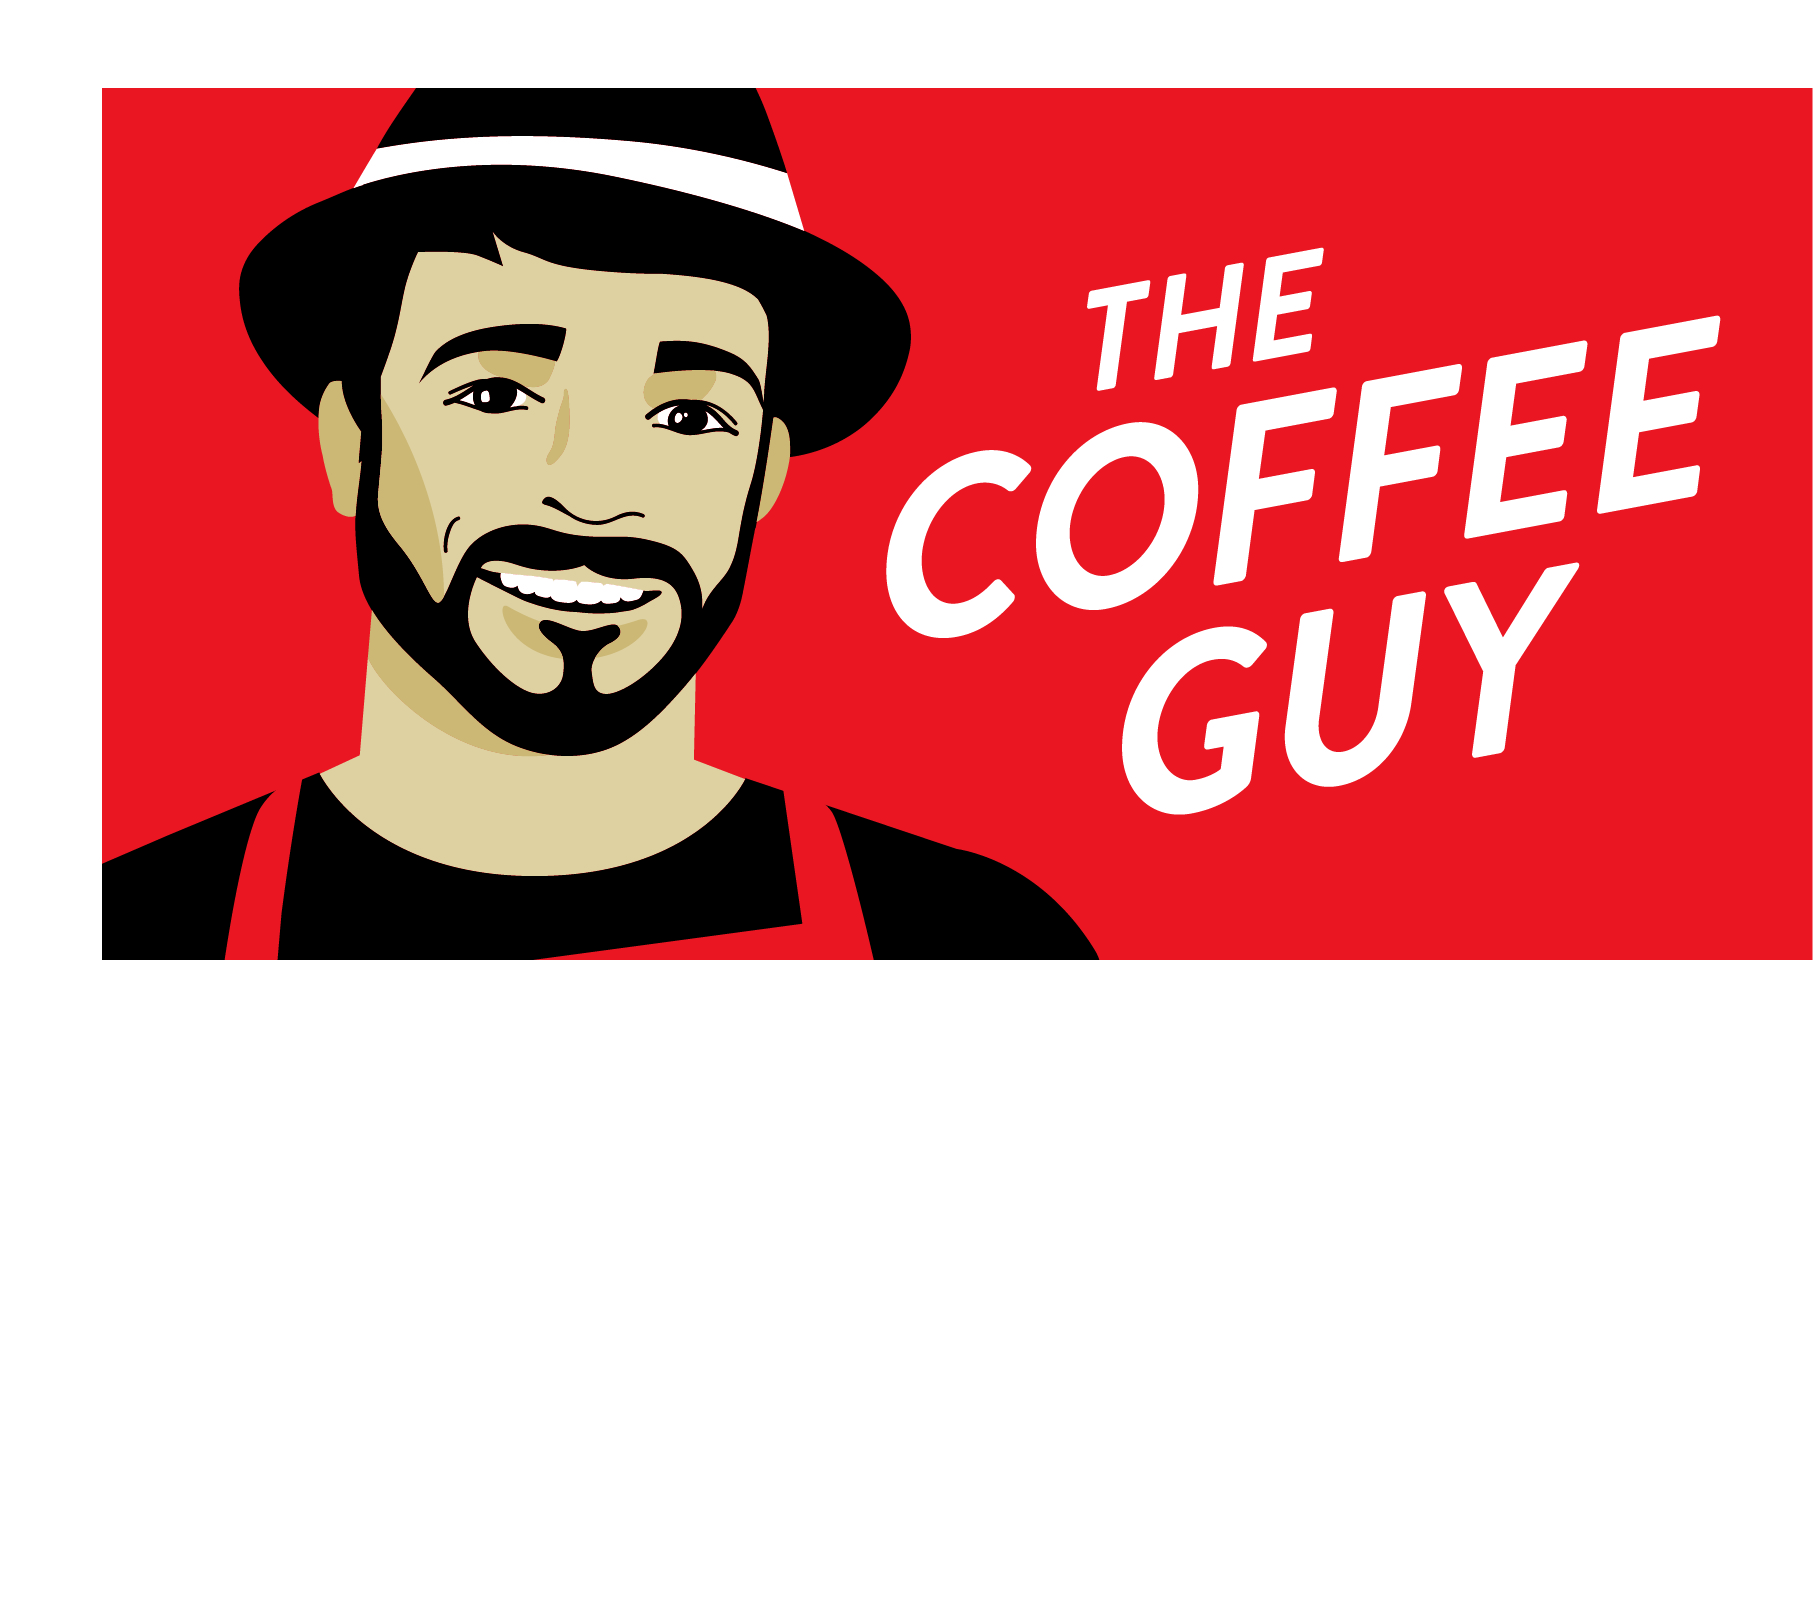 Be That Coffee Guy! NEW Coffee Guy mobile franchise available in VIC!